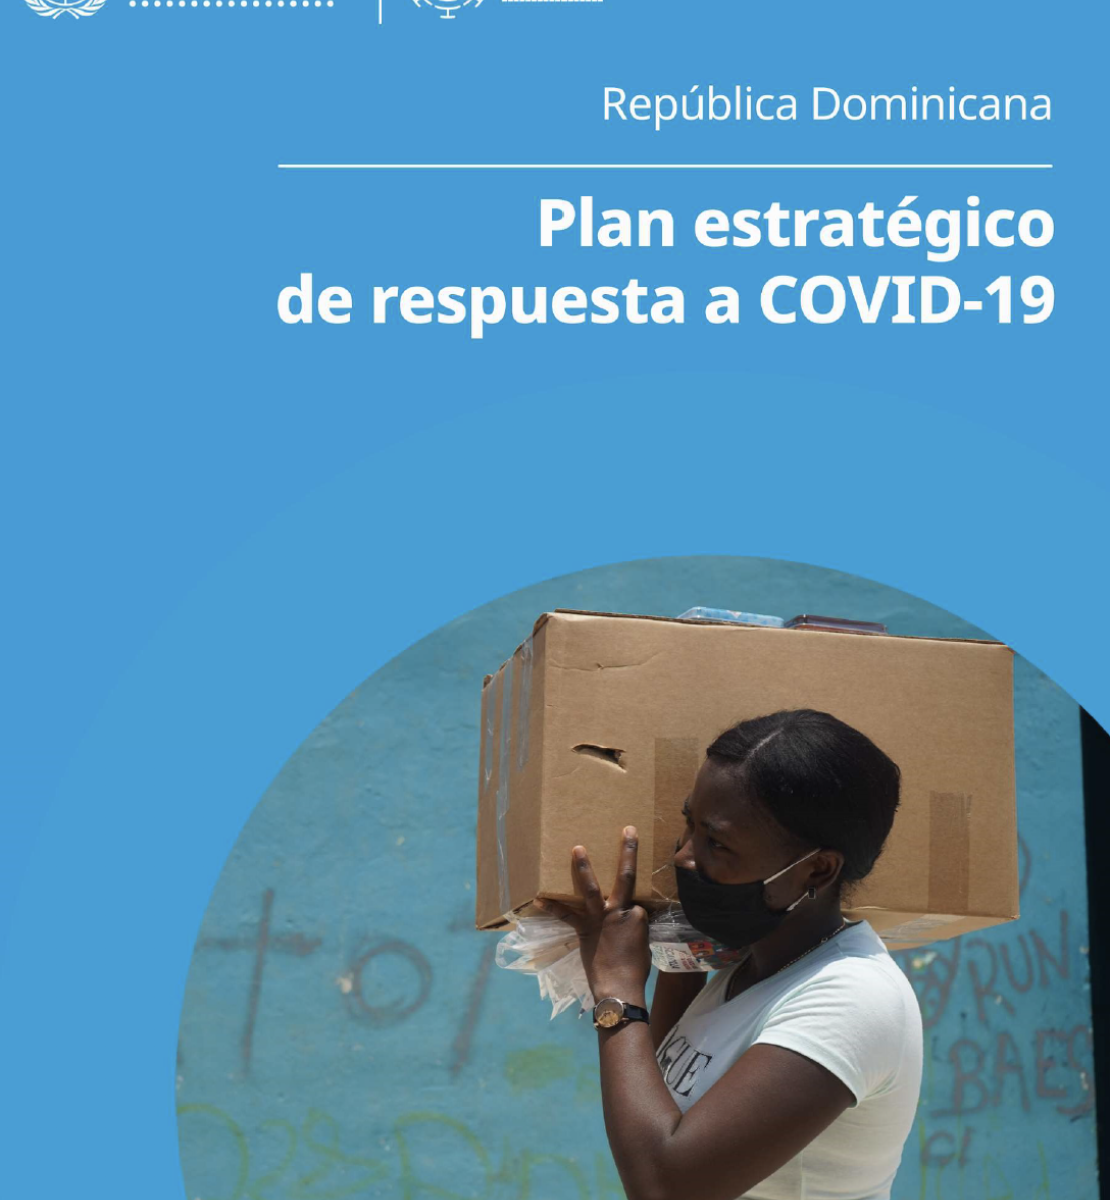 The blue cover contains an image of a woman wearing a face covering carrying a box above her shoulders, with the title in Spanish just above.